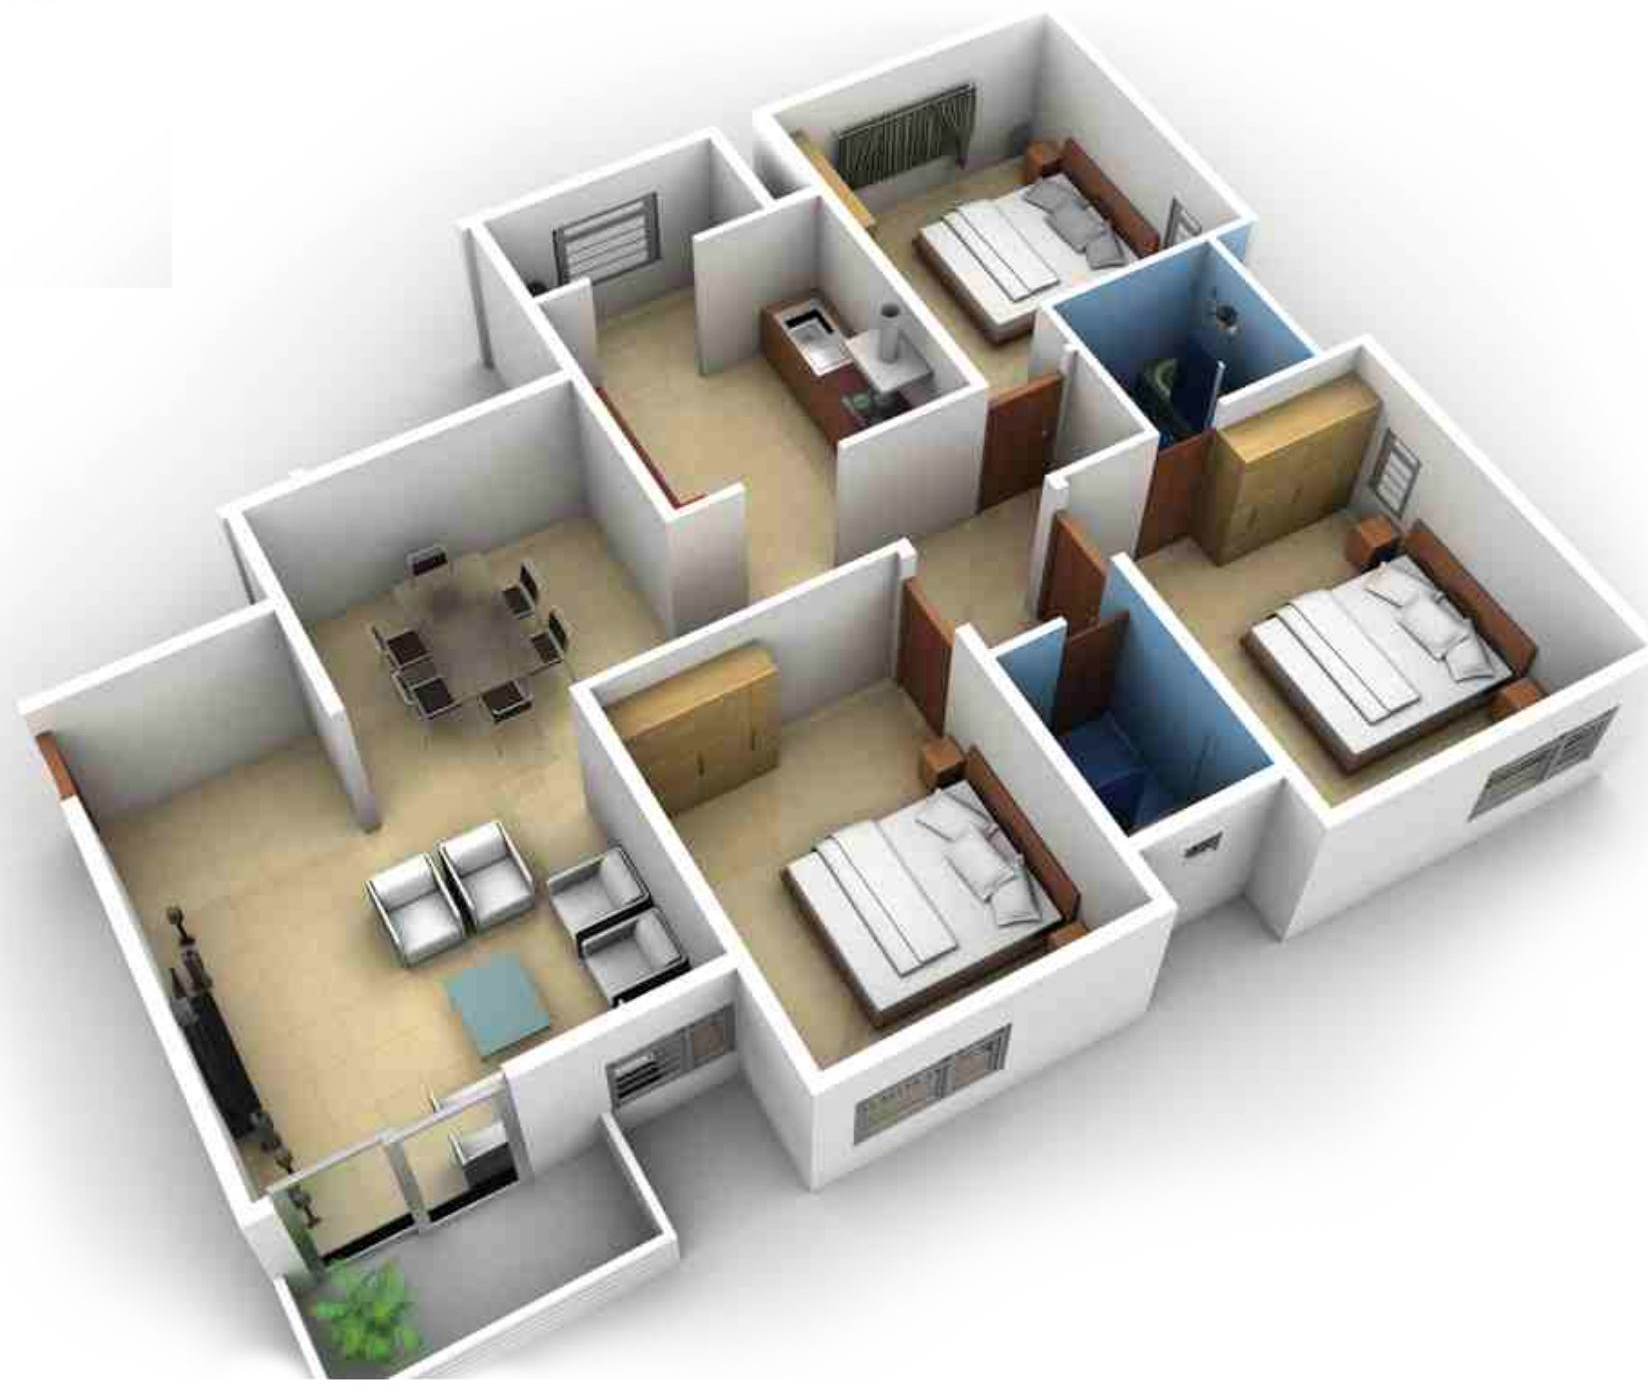 91 3 bhk home design layout home style 2 bhk design plan layout sq ft 3 bhk 2t apartment for sale in bluejay aston raja malvernweather Images